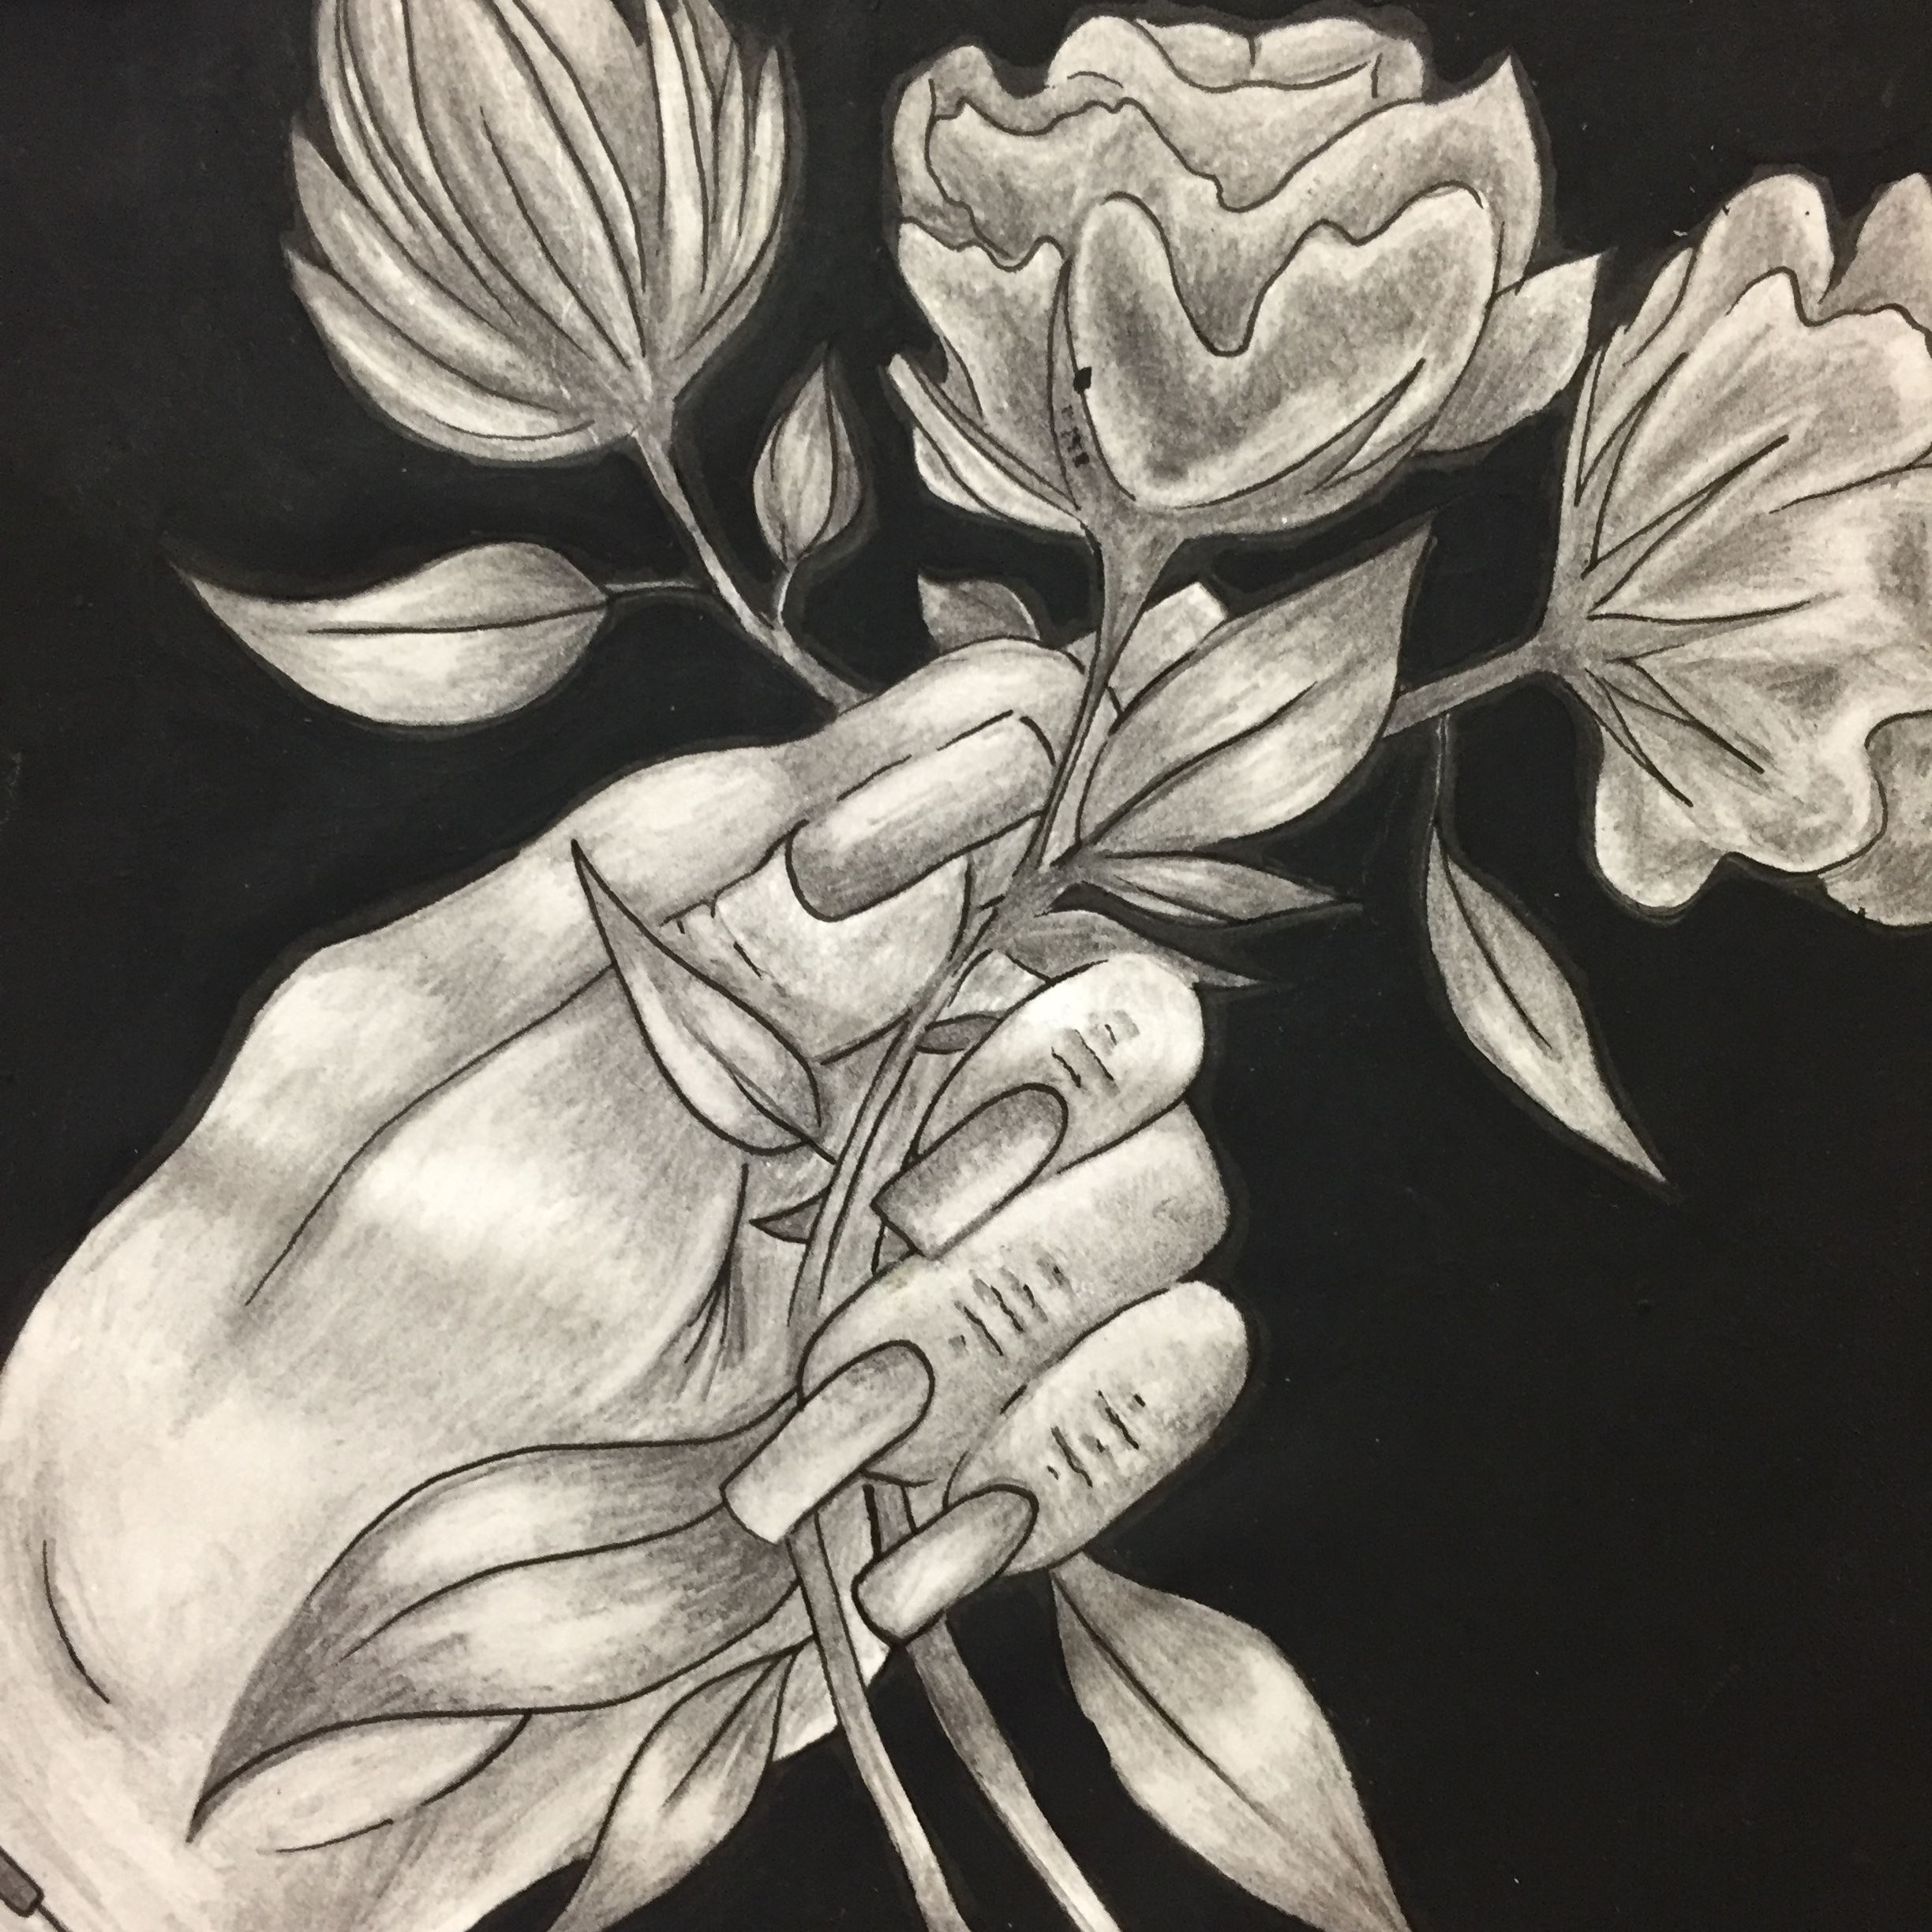 Black and white painting of woman's hand holding flowers